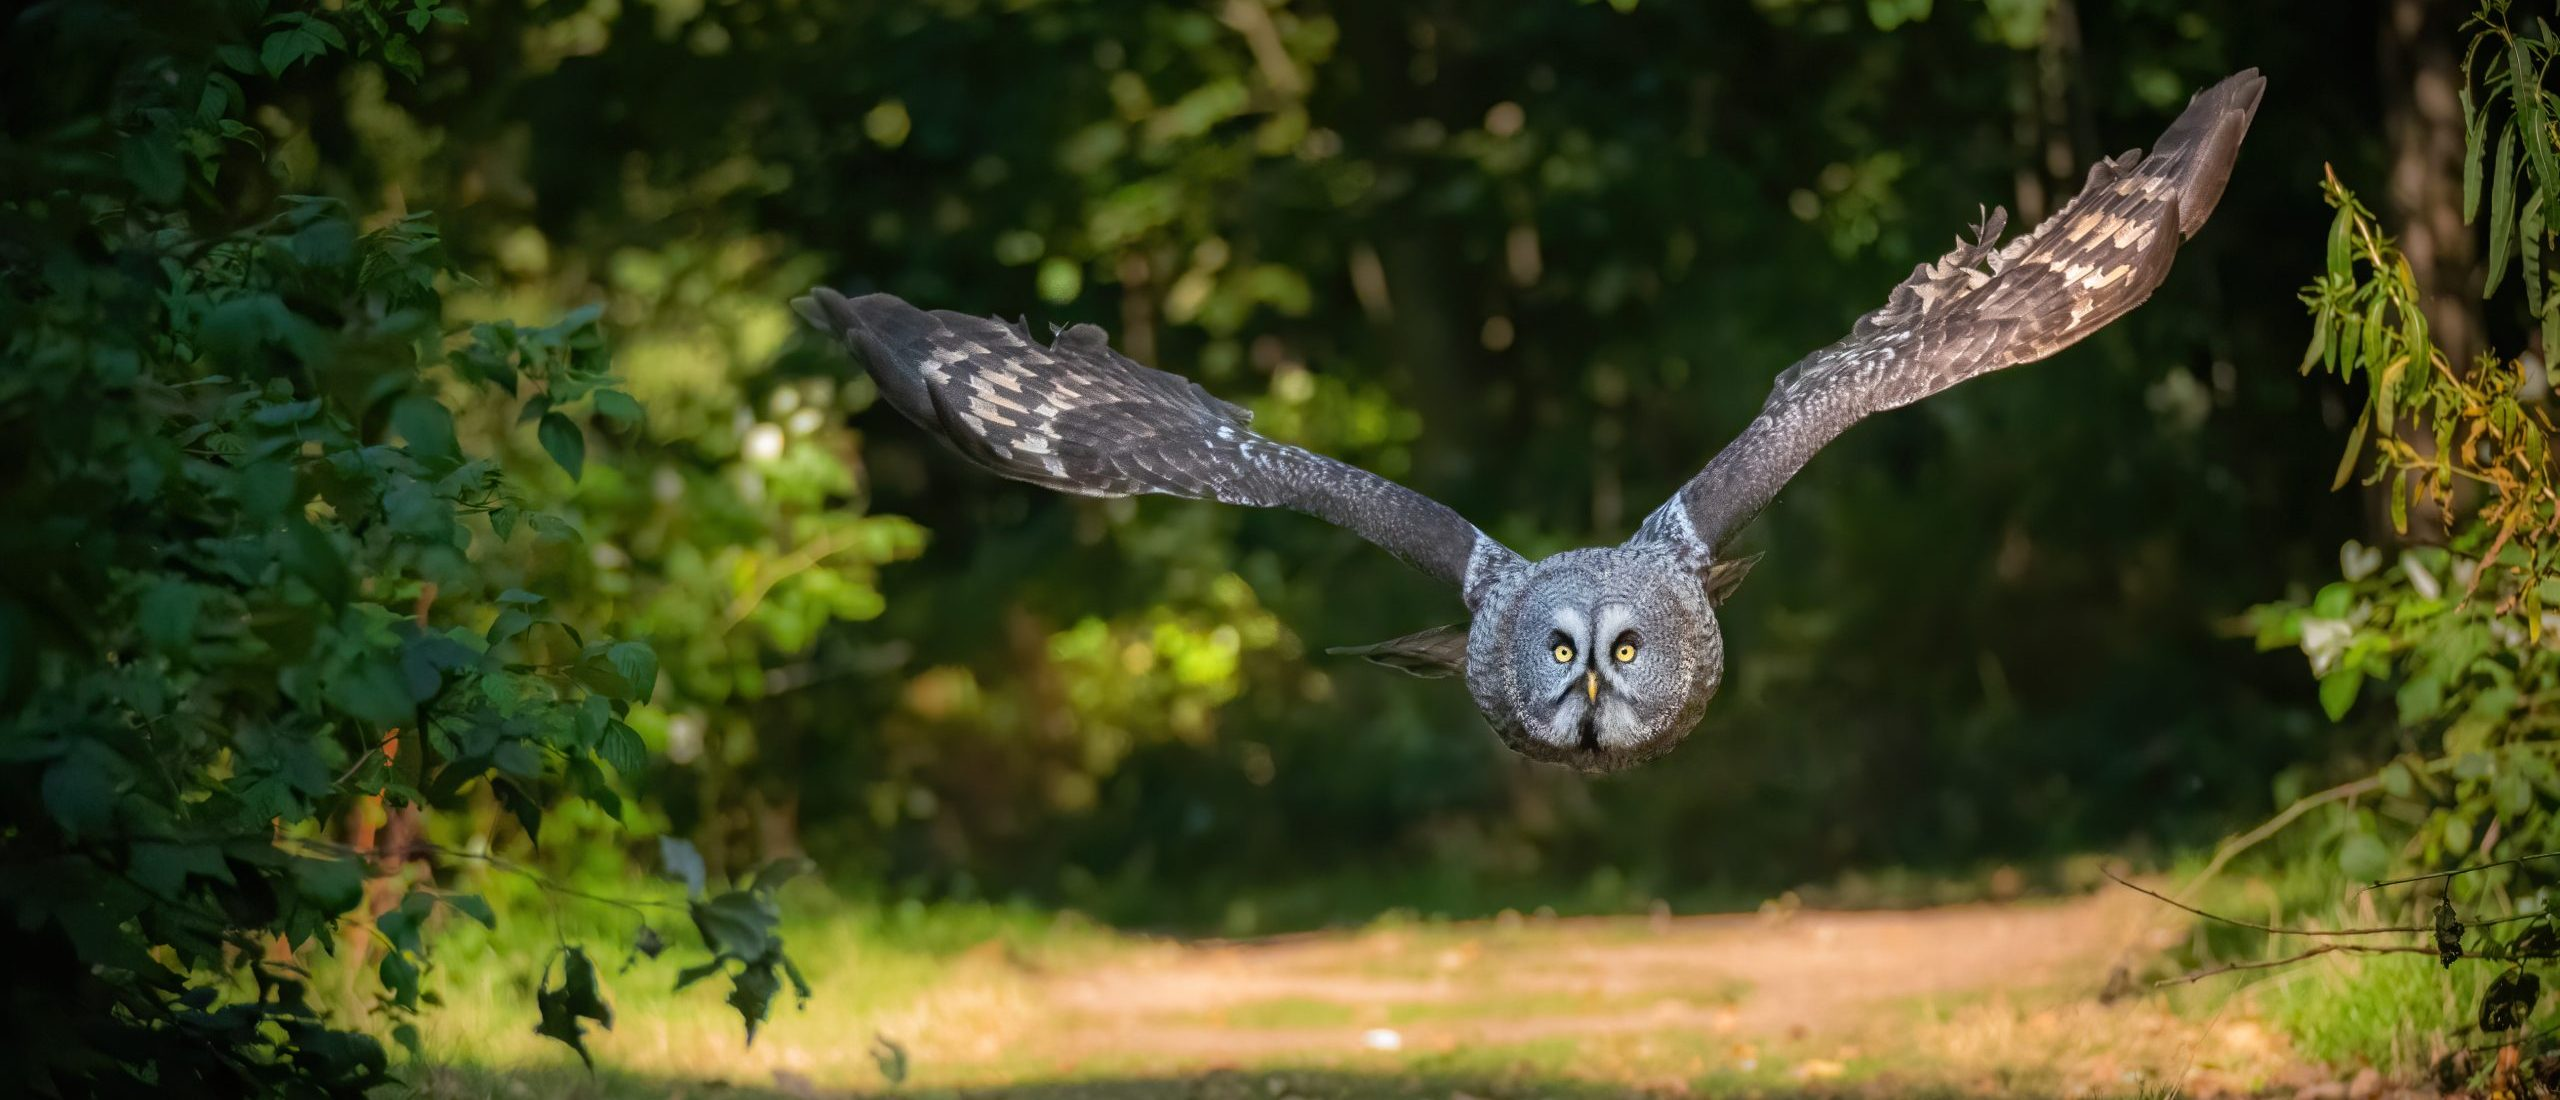 Bluebell - Great Grey Owl at Thoresby Park